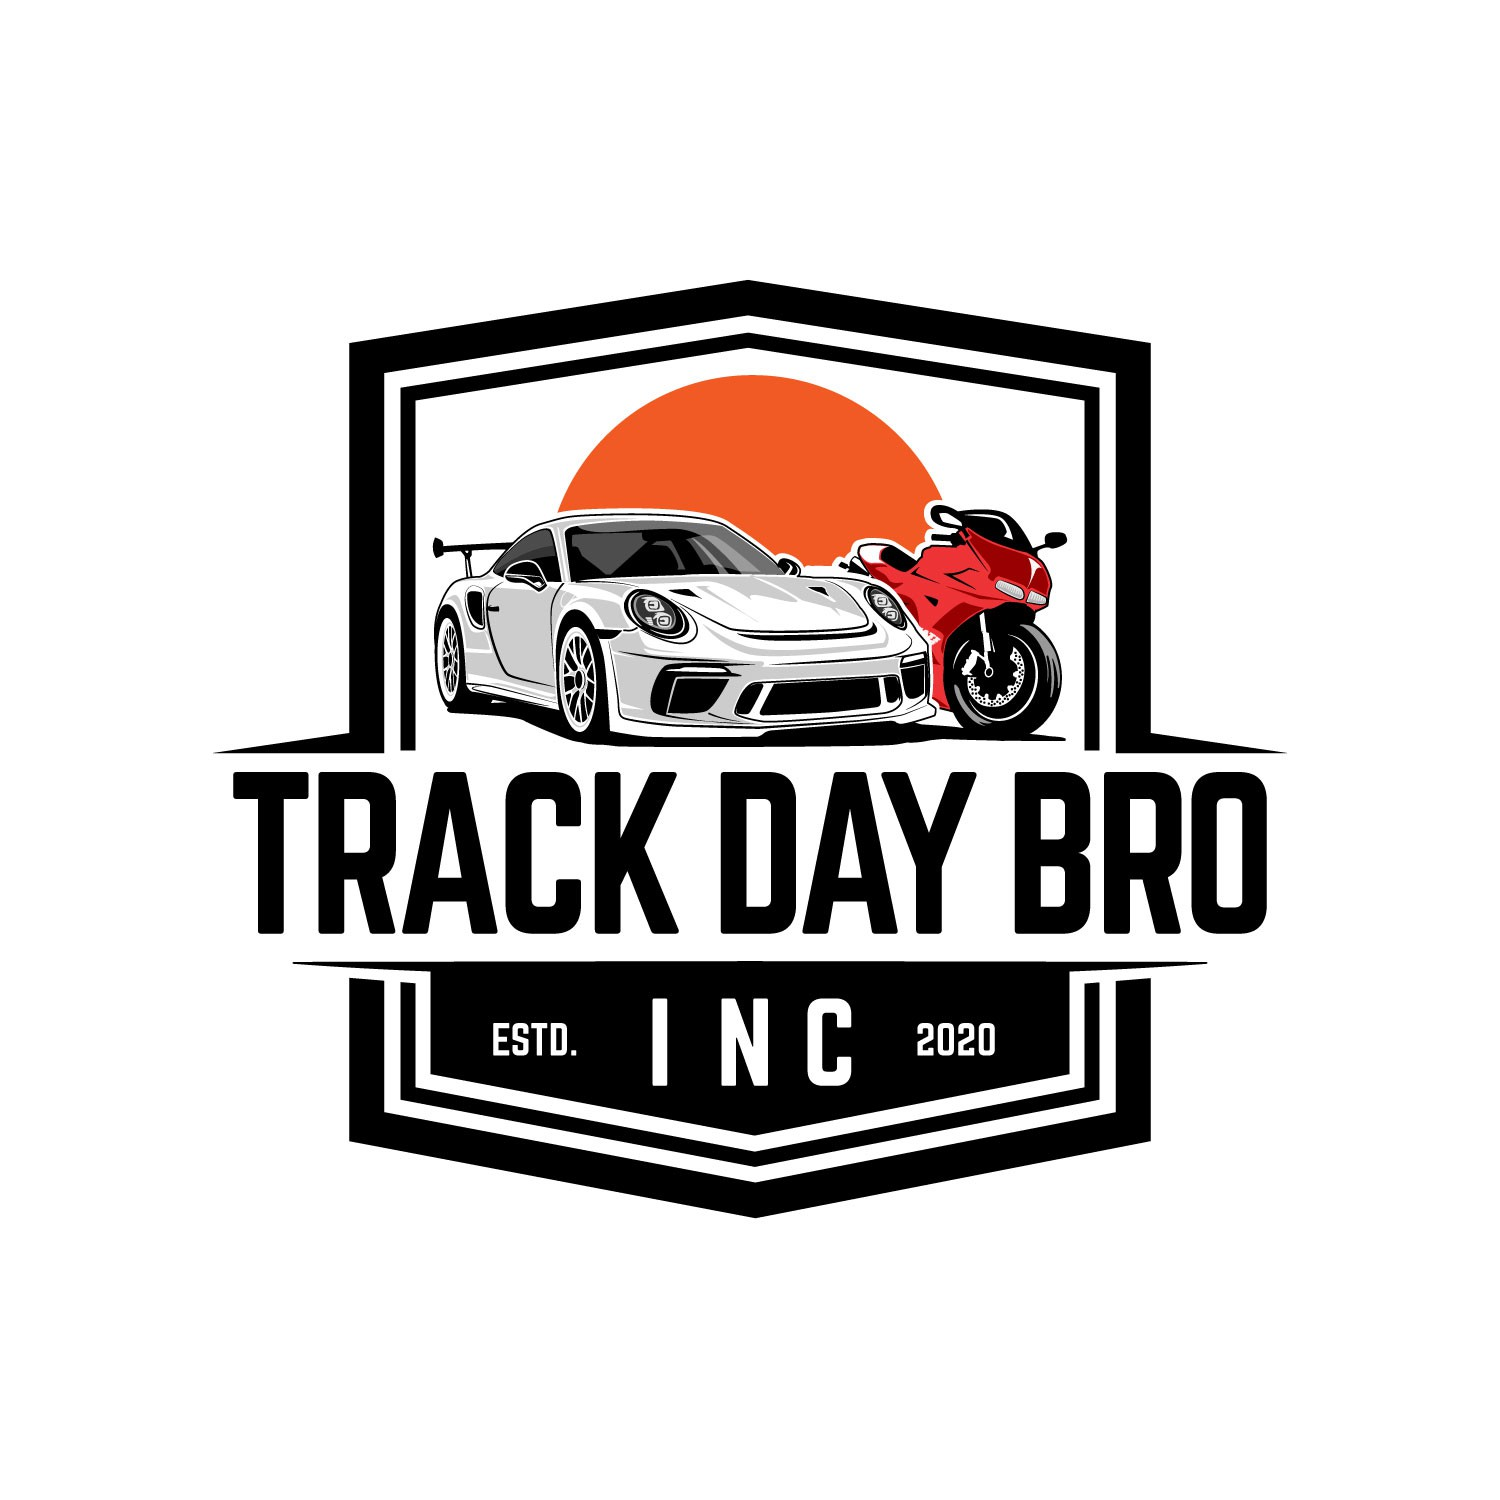 Logo for track day club where cars and motorcycle are what matters